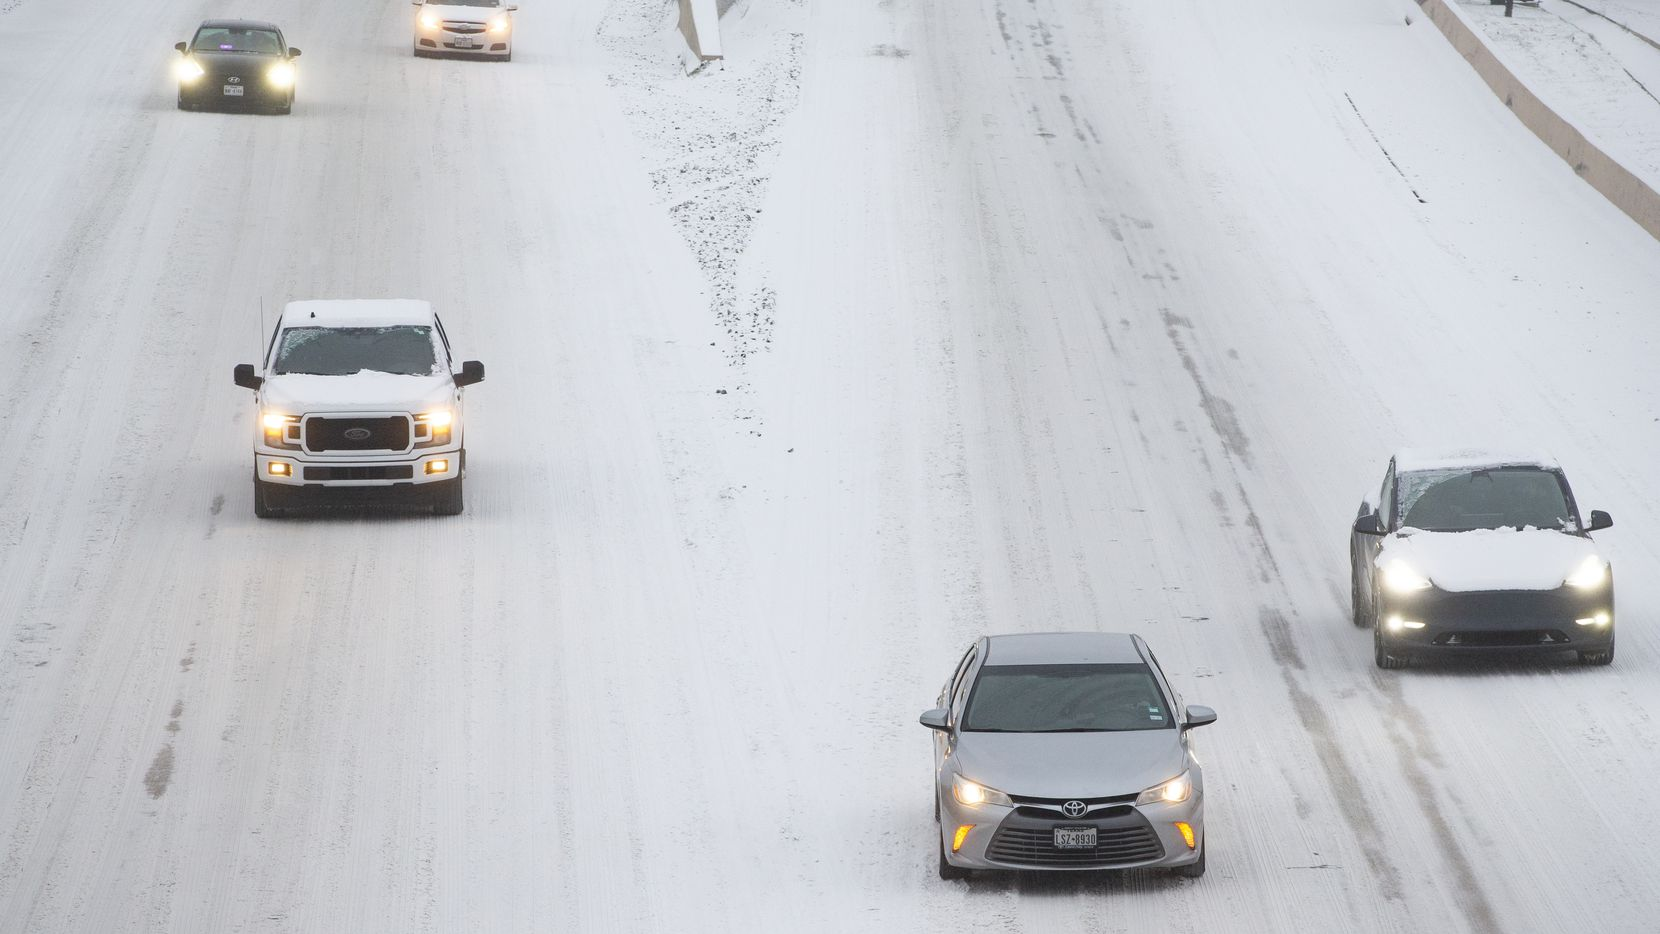 Traffic seen on a snowy and icy North Central Expressway in Dallas on Wednesday, Feb. 17, 2021. Millions of Texans have lost power amid this record-breaking winter storm. (Juan Figueroa/ The Dallas Morning News)